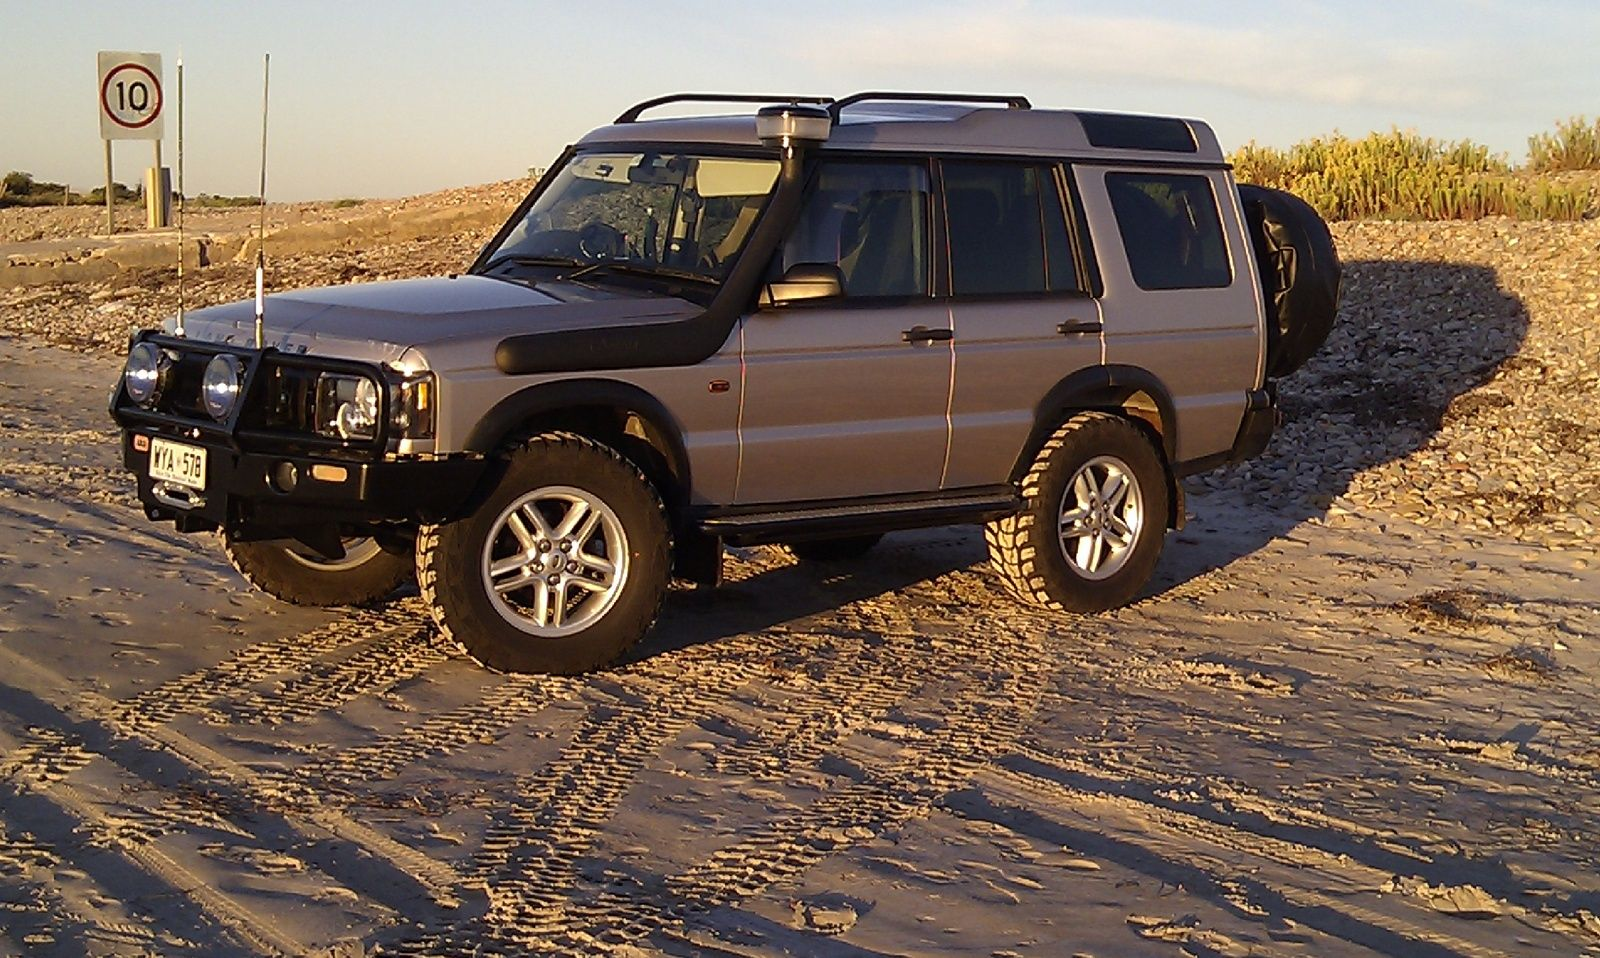 2002 land rover discovery series ii 4 dr se awd suv picture exterior bicycle pinterest. Black Bedroom Furniture Sets. Home Design Ideas